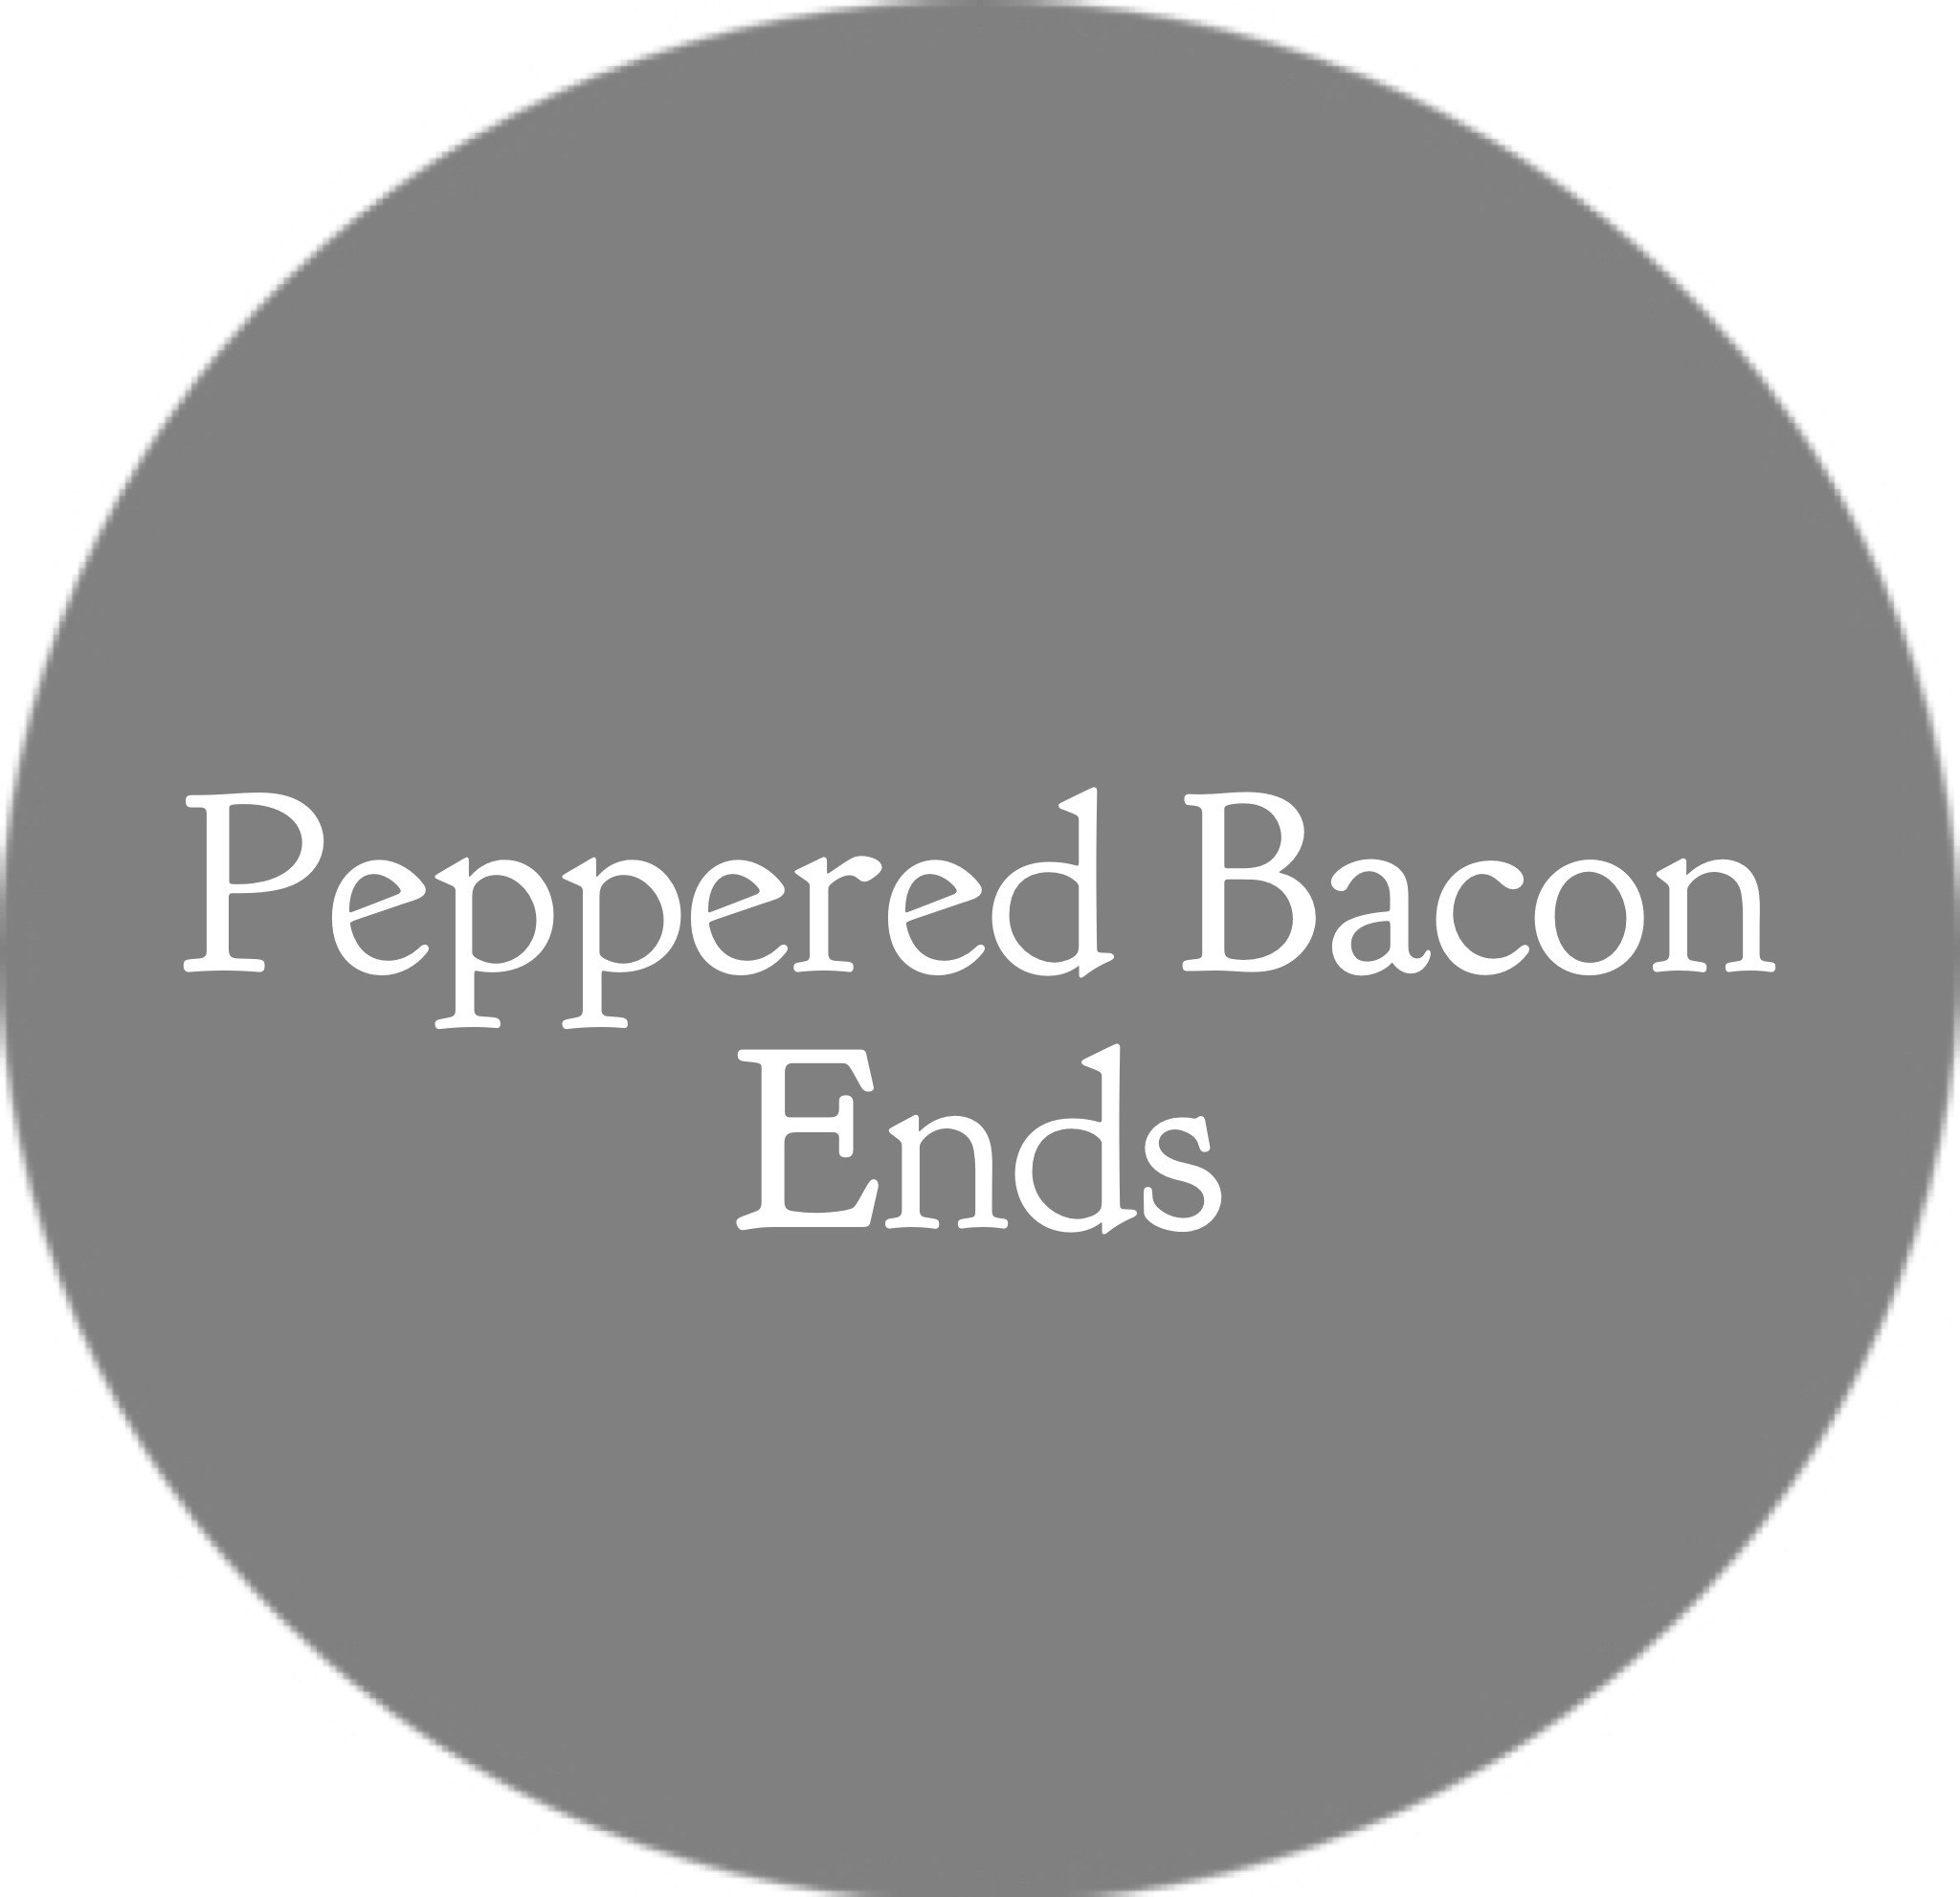 Peppered Bacon Ends